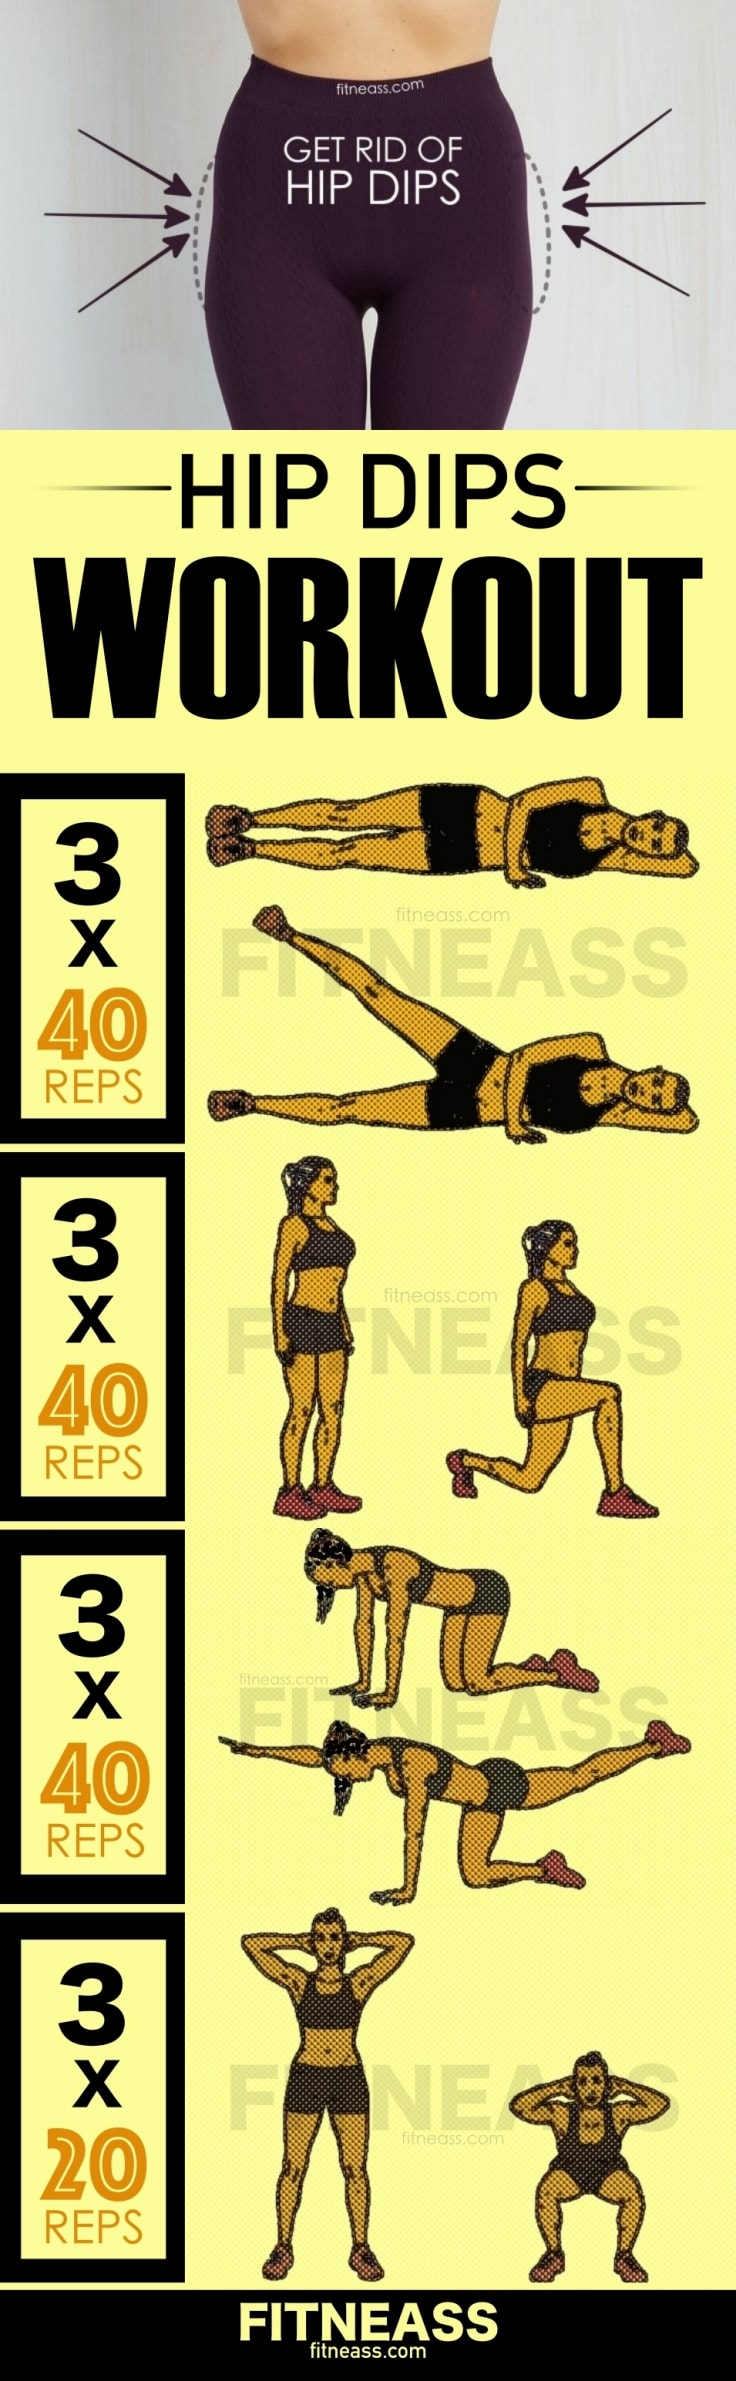 How To Reduce Hip Dips And Get Rid Of Violin Hips Fitneass